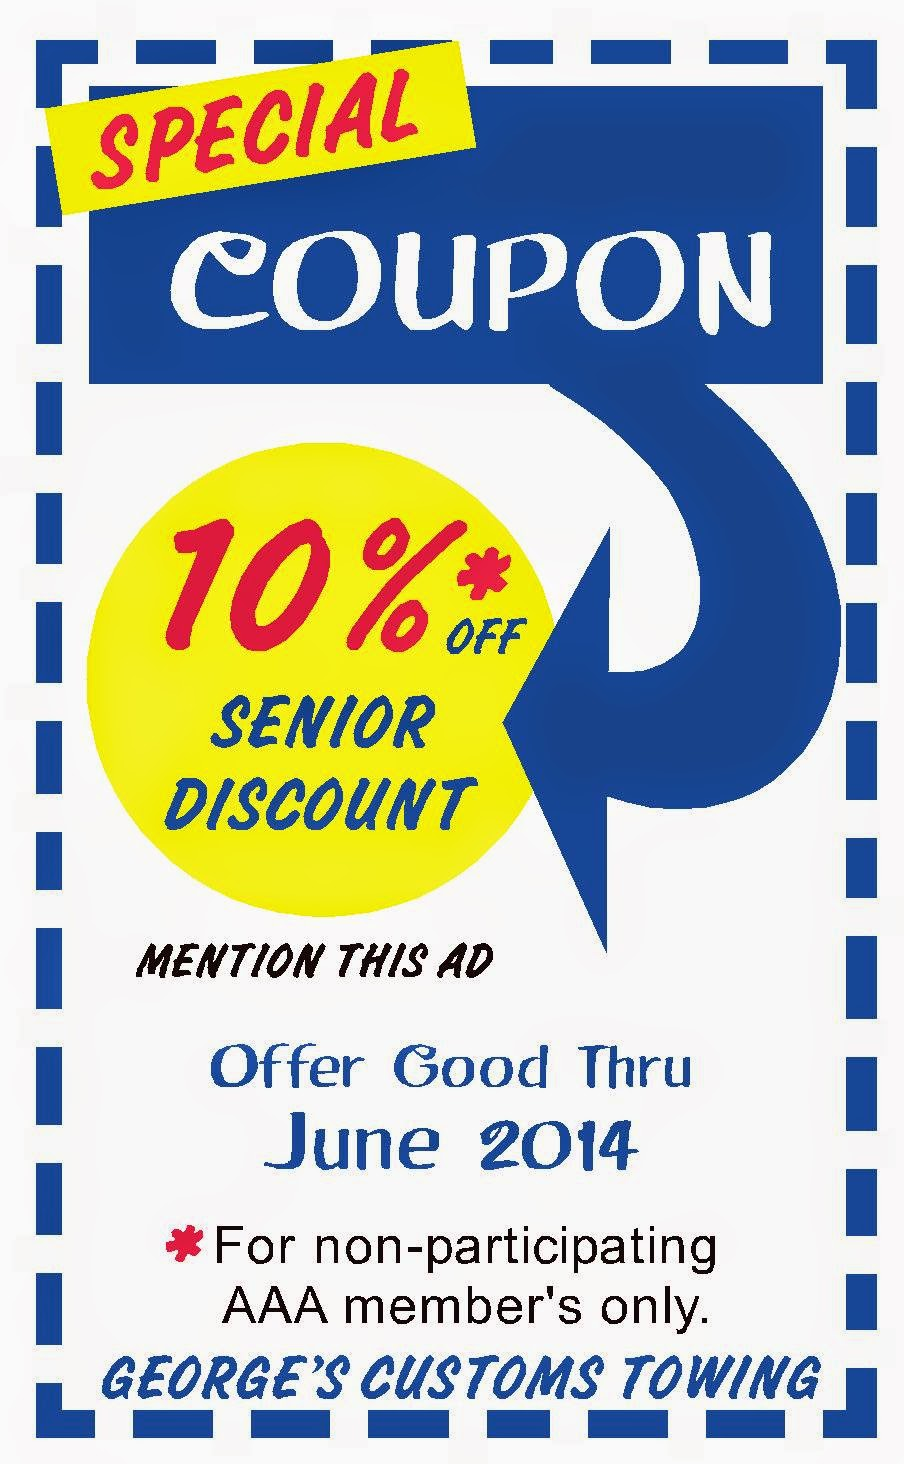 June 2014 Senior Discount